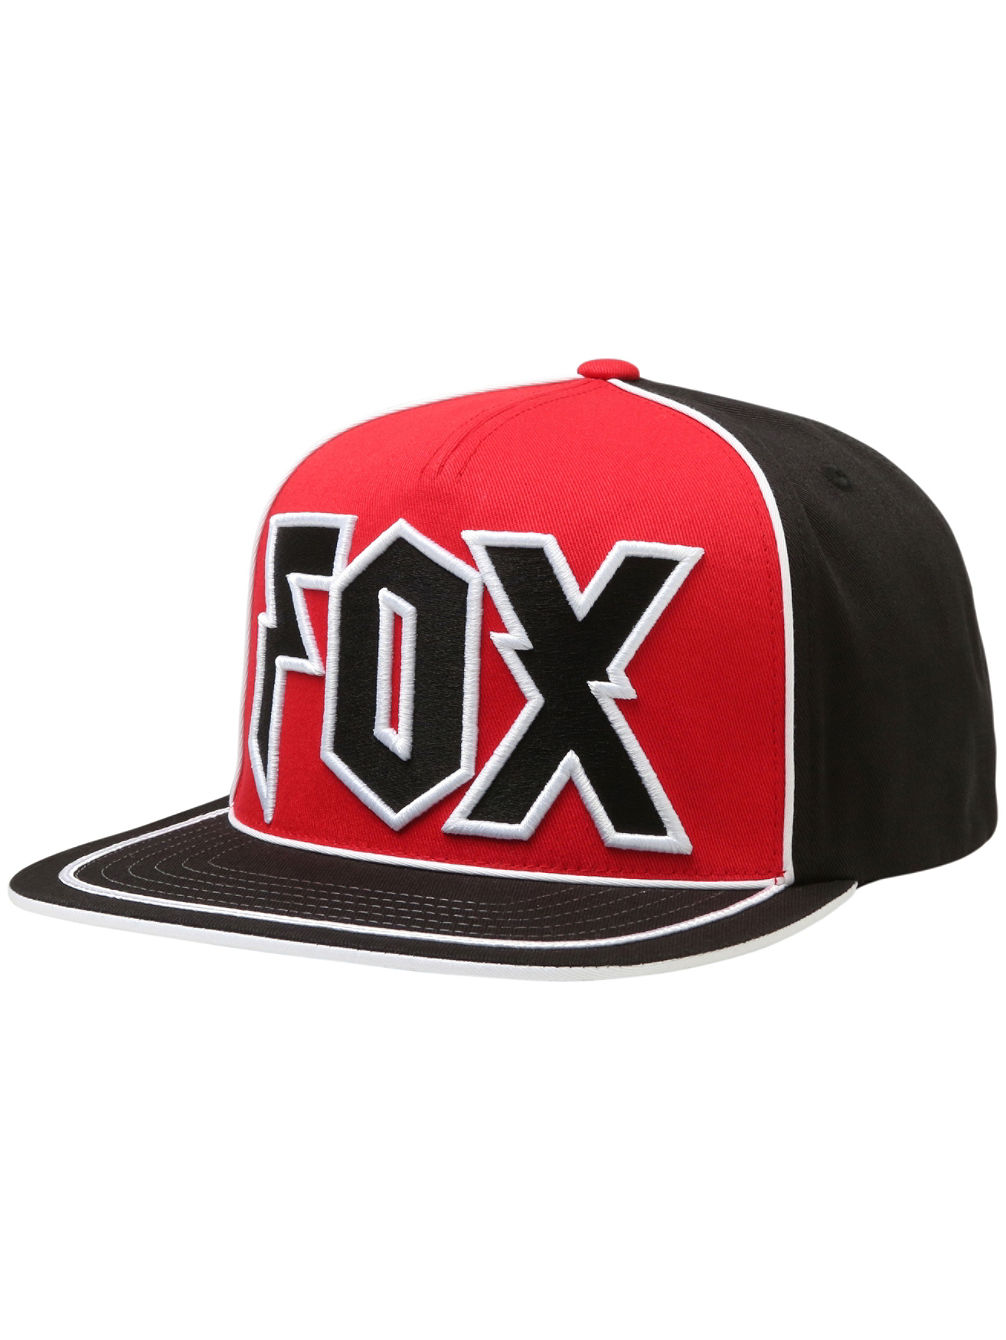 9974141142a Buy Fox Faction Snapback Cap online at Blue Tomato